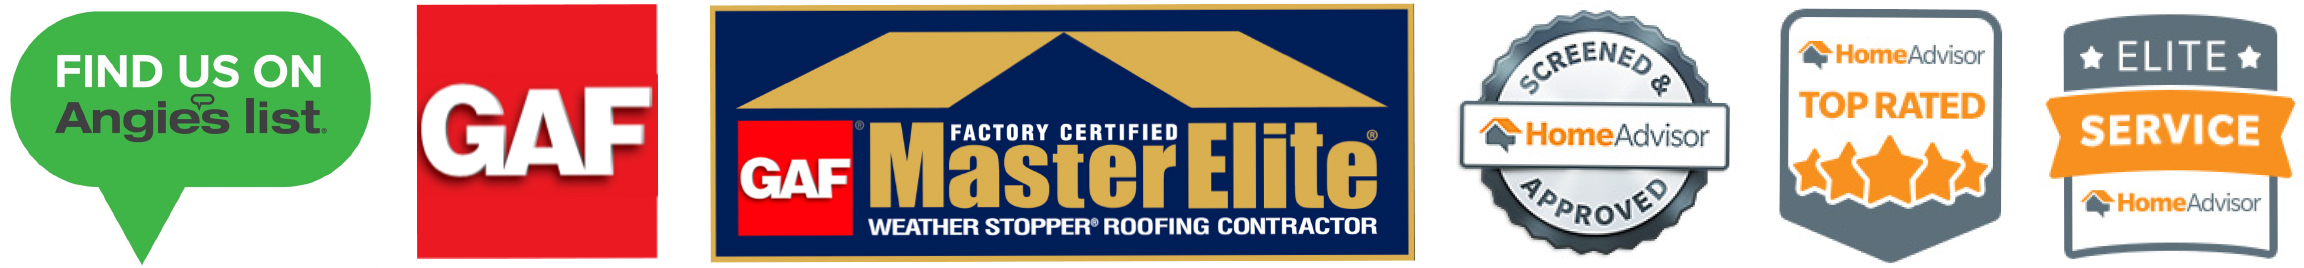 Leading Roofing Company In Tampa Florida Southern Pro